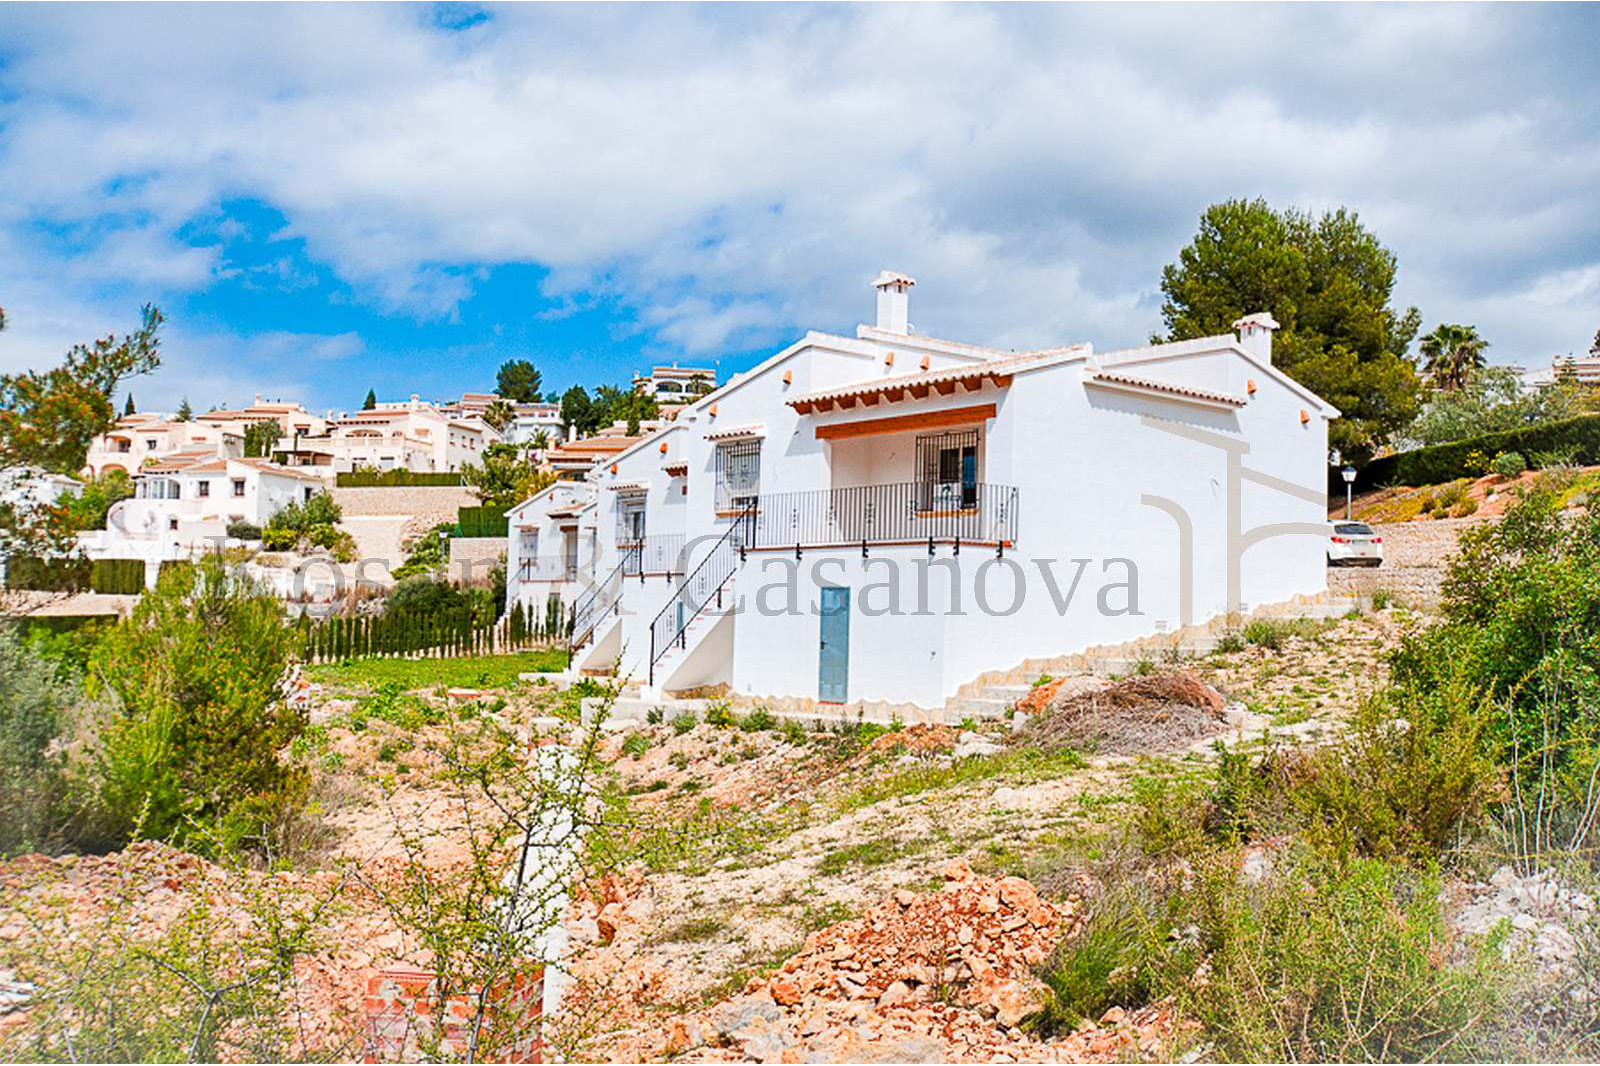 Murla- Detached villas, ready to move into on the Costa Blanca pic 3